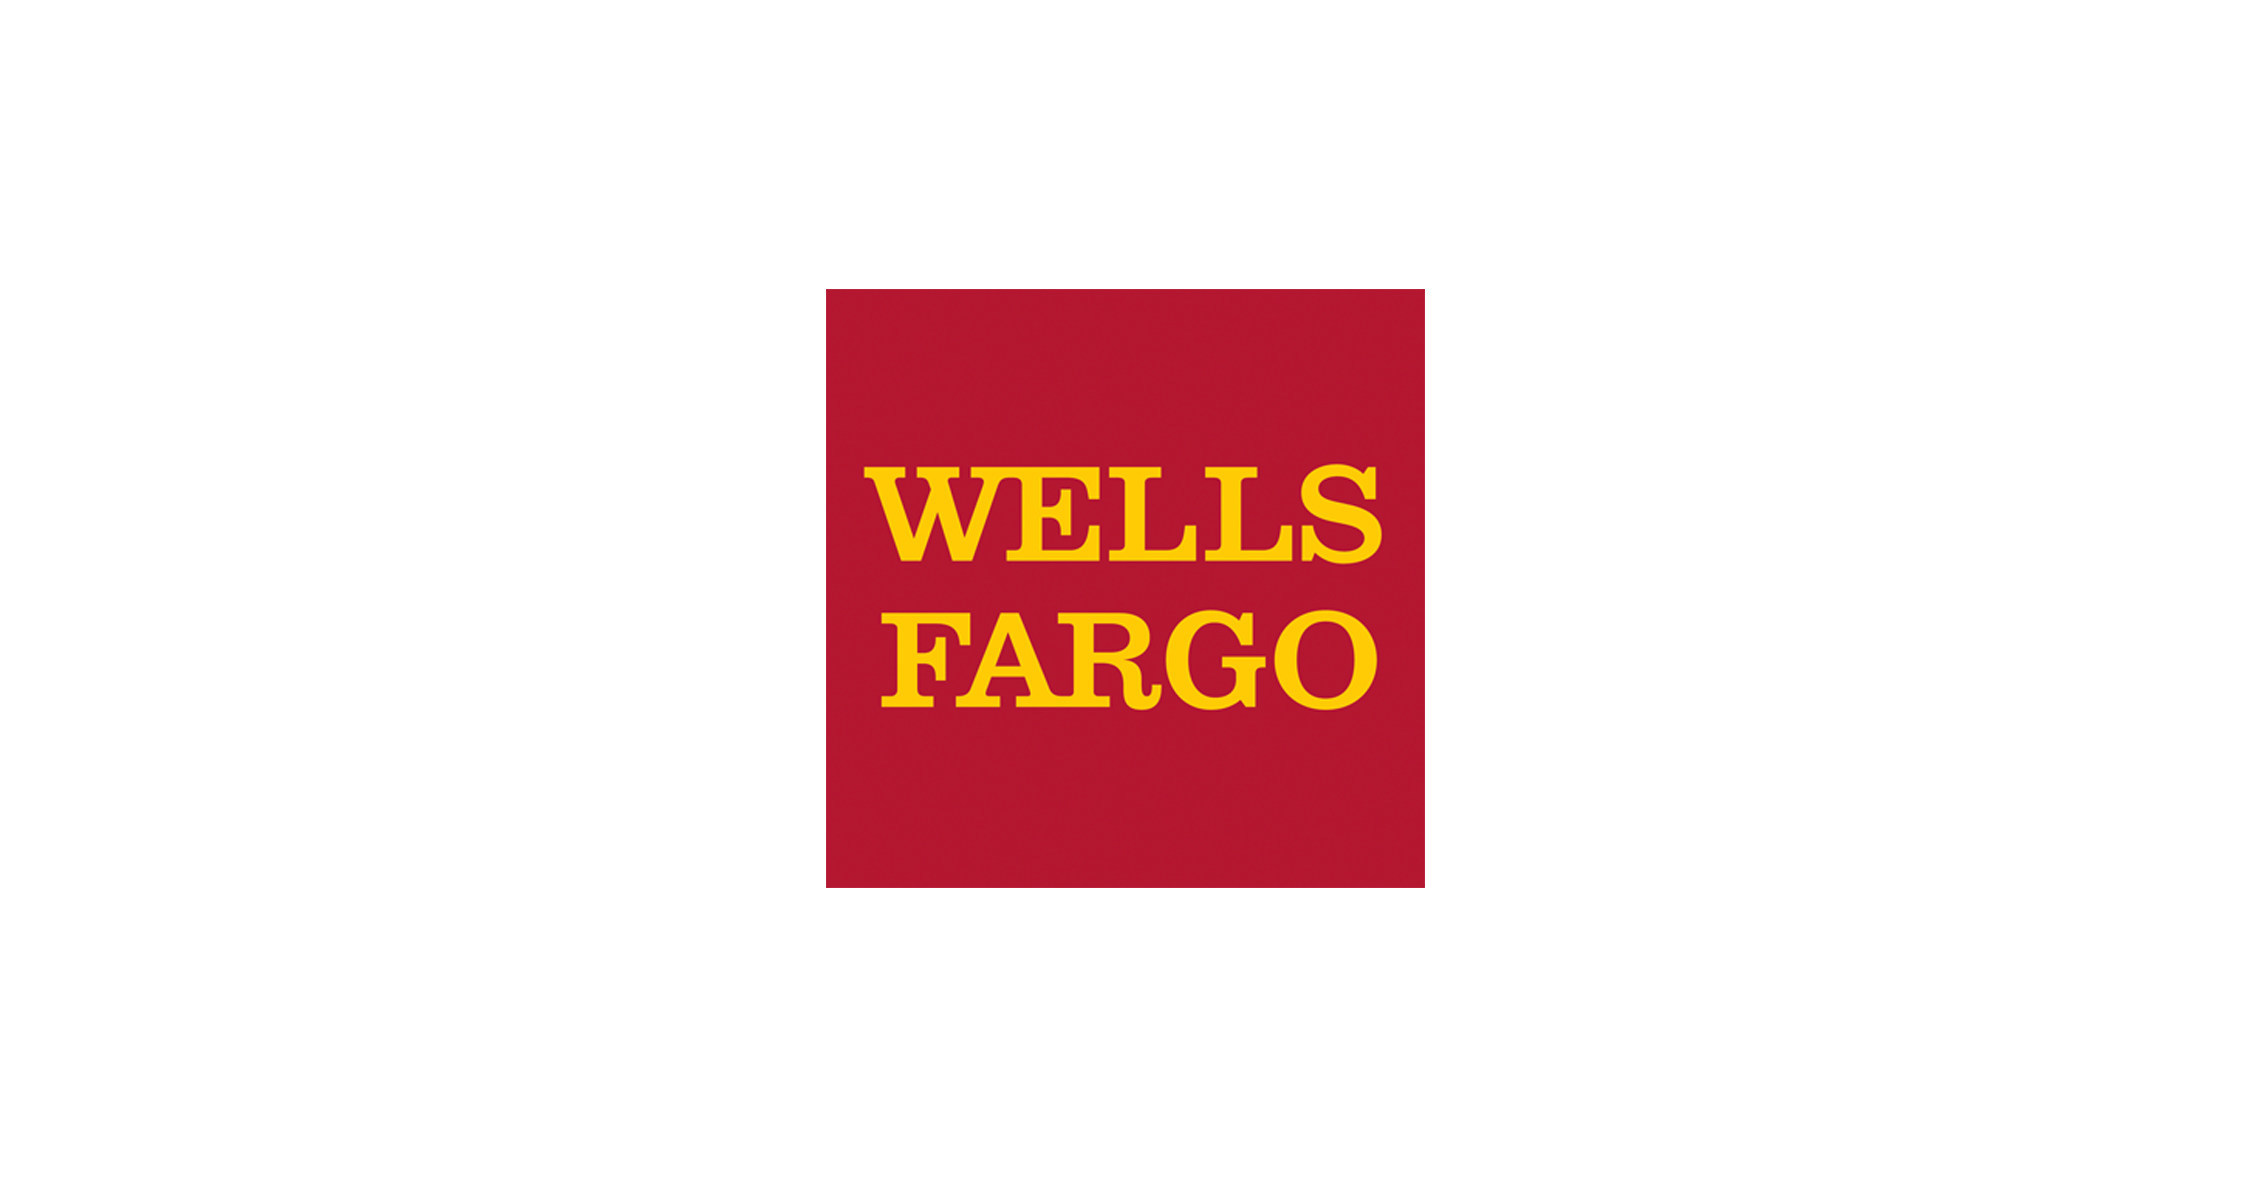 wells fargo jewelry advantage credit card payment style